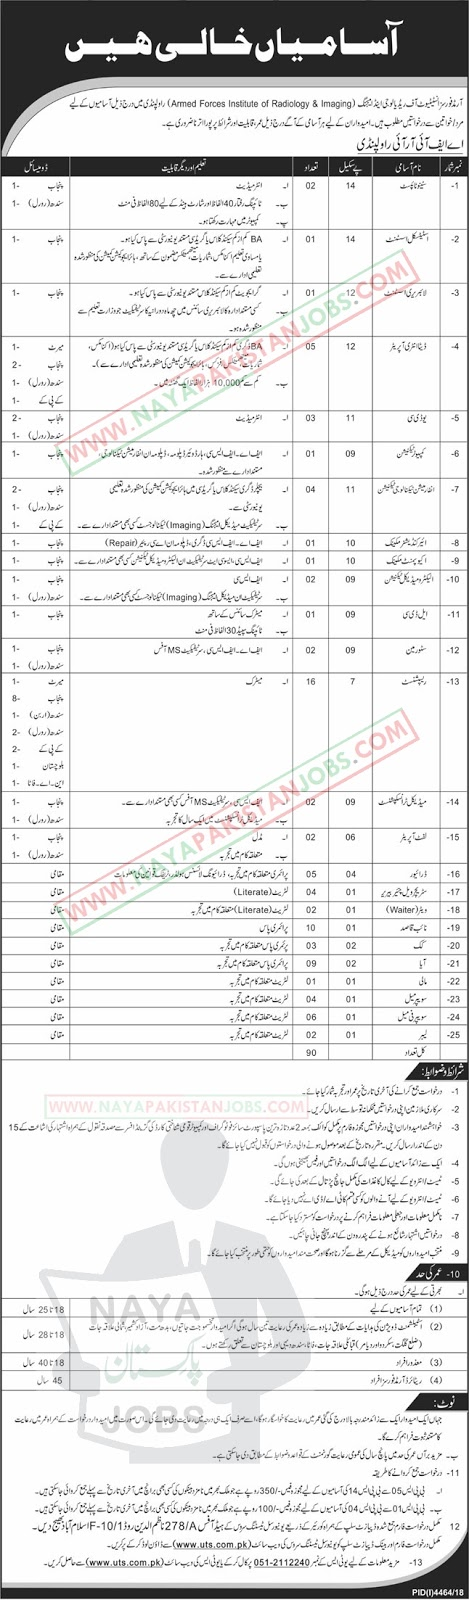 AFIRI Rawalpindi Jobs 24 march 2019,Armed Forces Institute Of Radiology And Imaging Jobs 24 march 2019